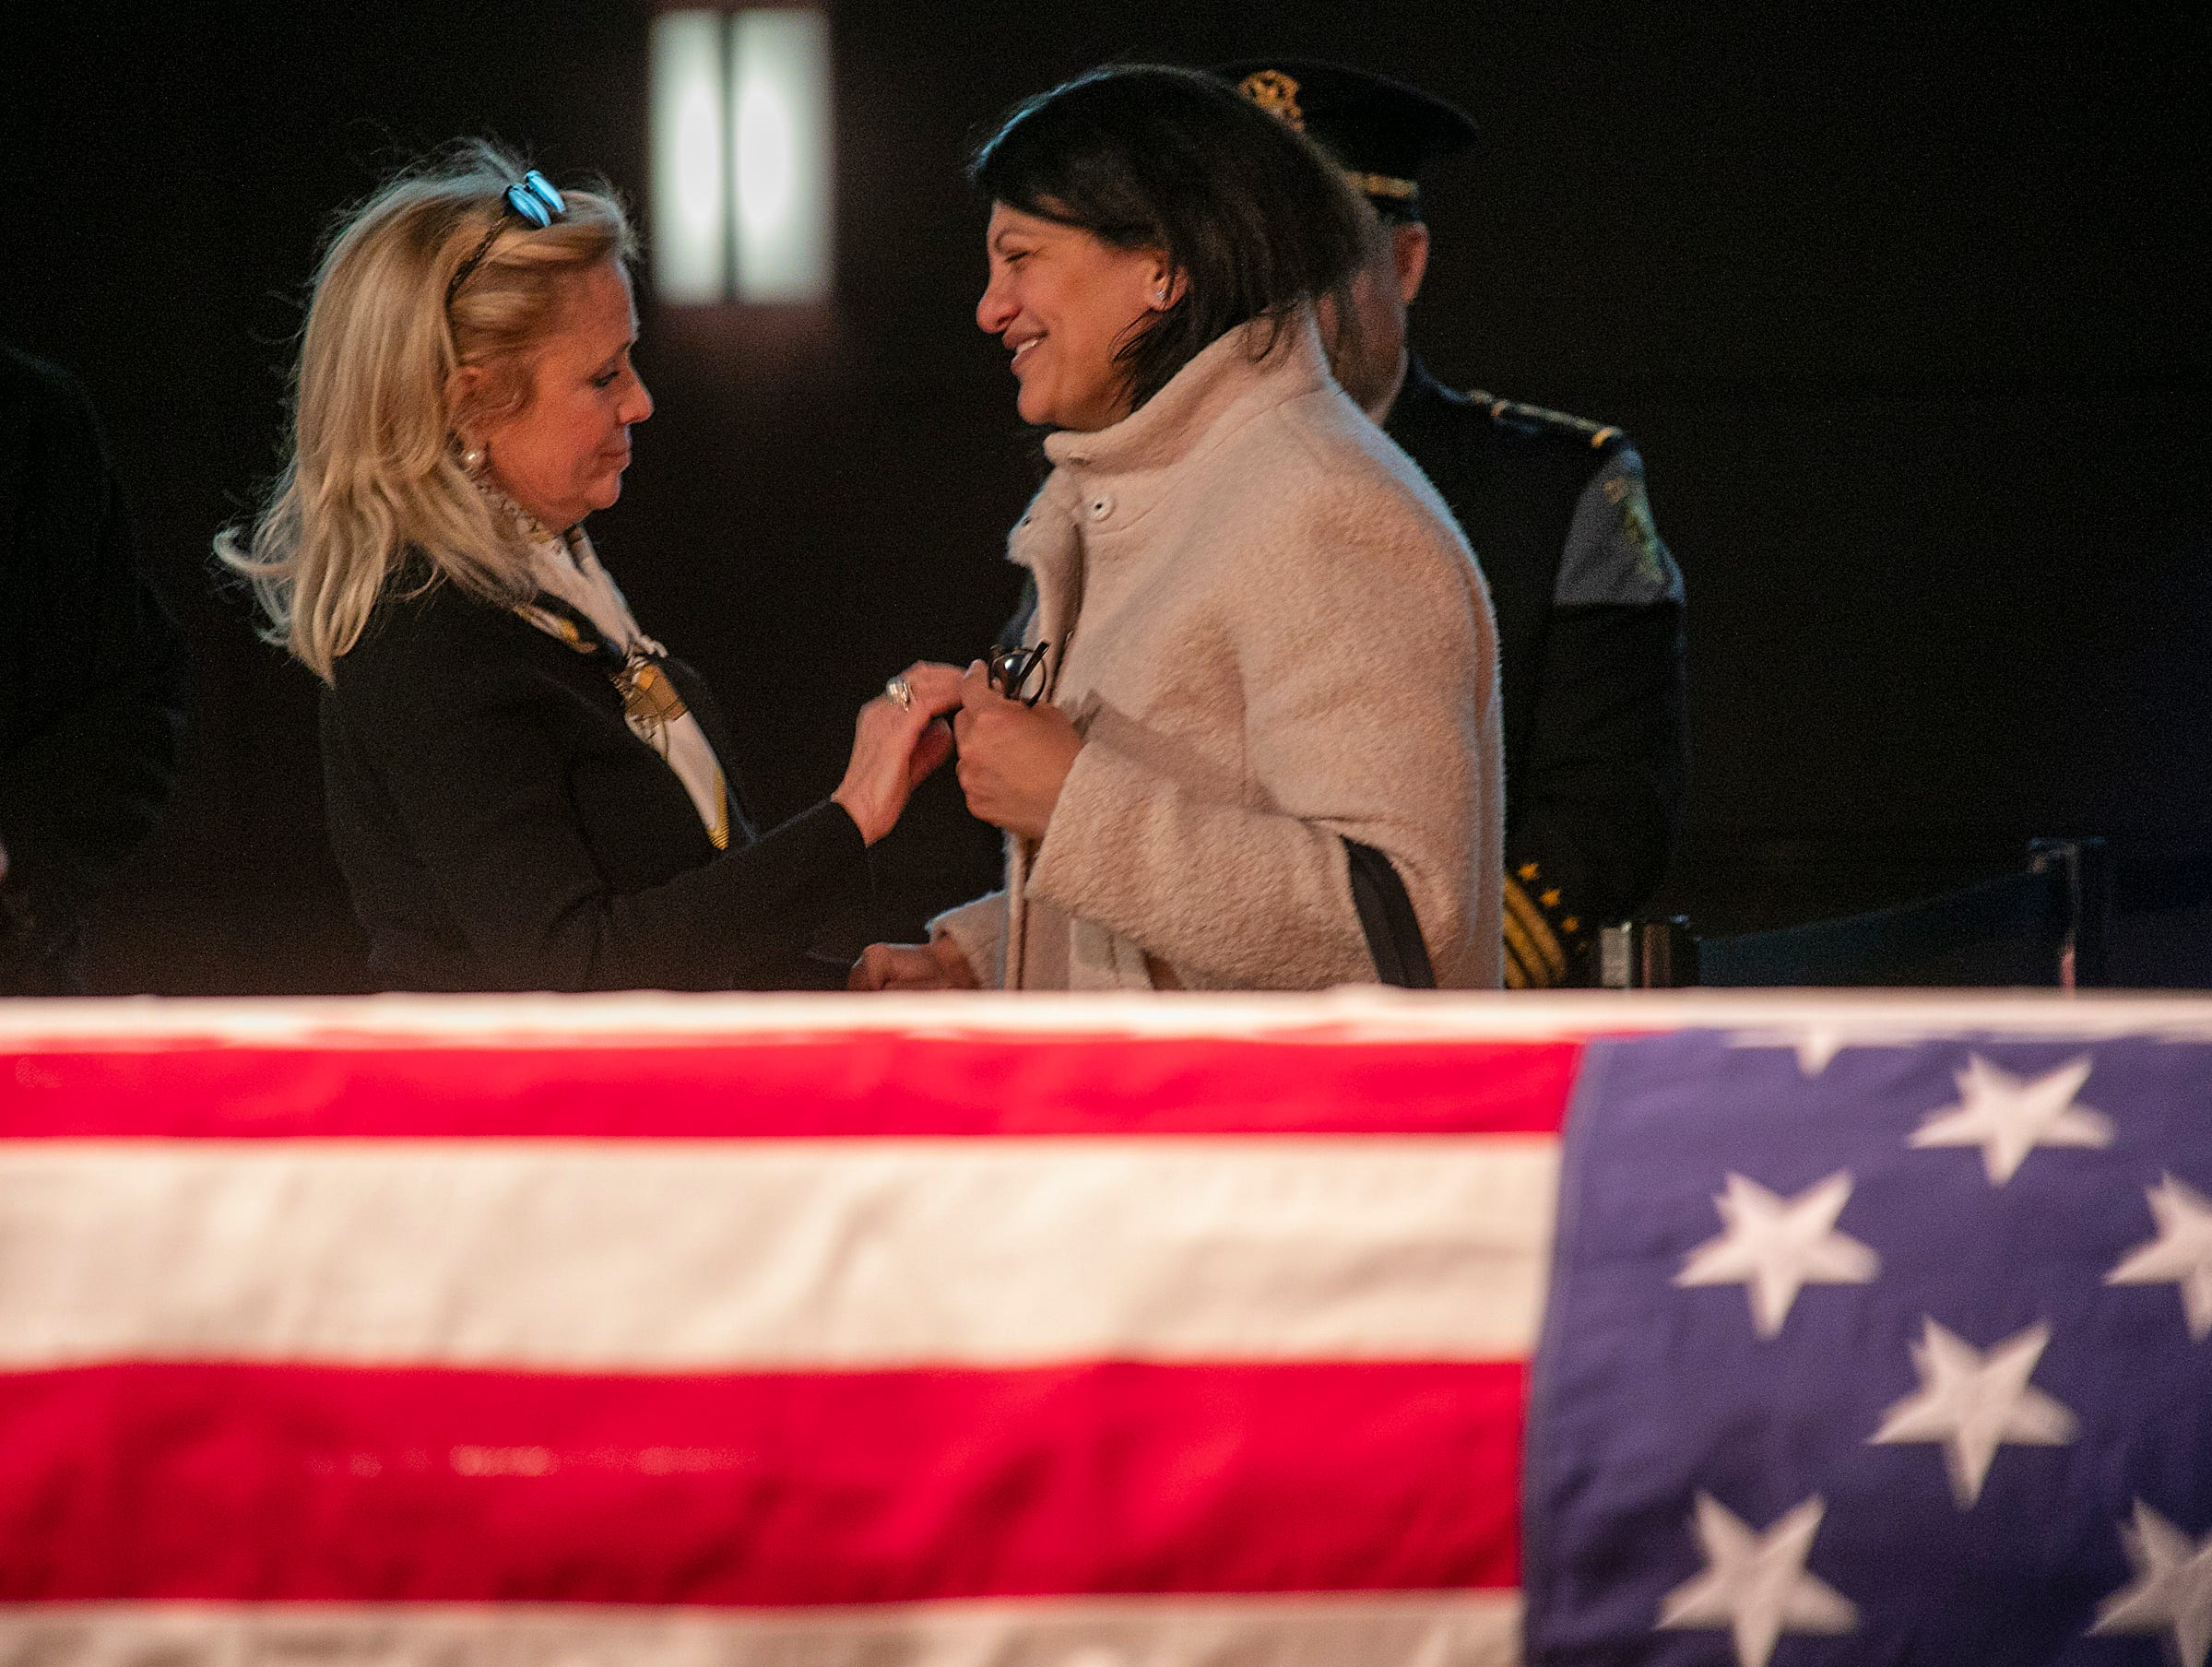 Congresswoman Debbie Dingell, left, greets congresswoman Rashida Tlaib as visitor stream by to pay their respects to her husband John Dingell who is lying in repose at the Michael A. Guido theater in Dearborn Monday, Feb. 11, 2019.